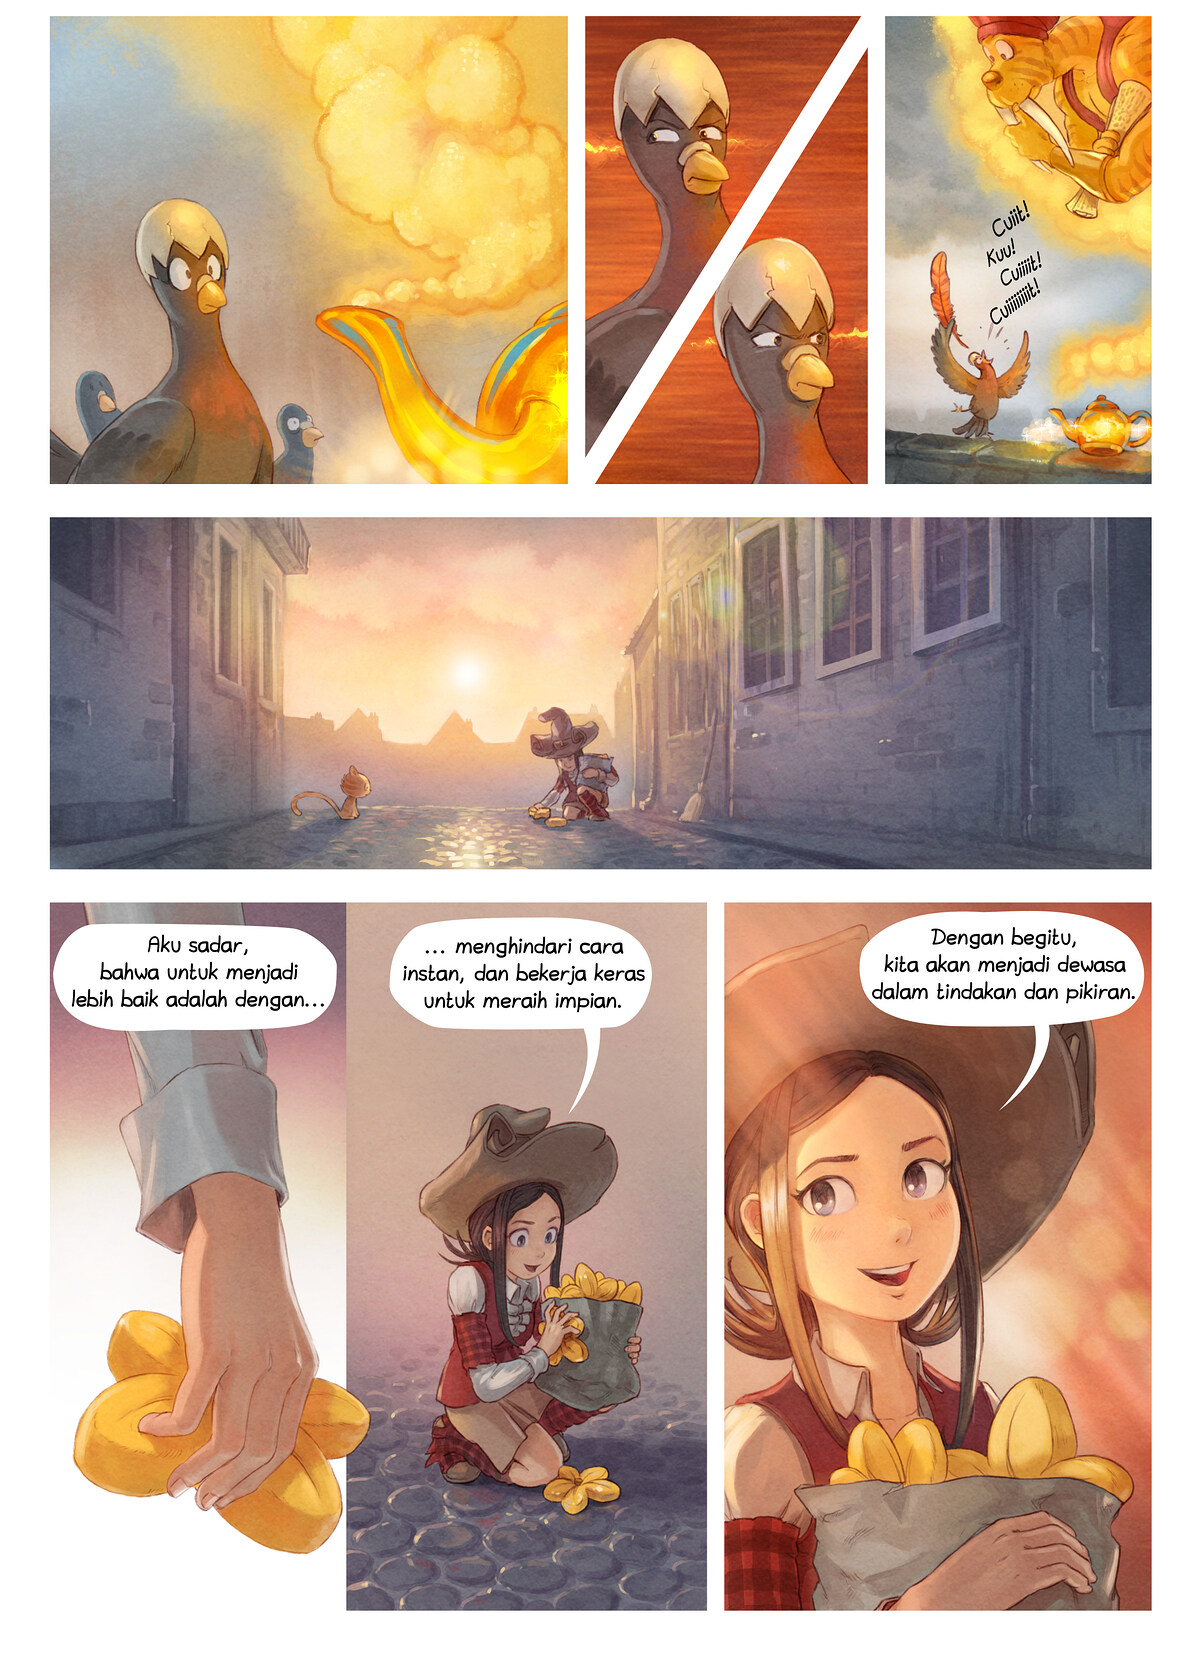 A webcomic page of Pepper&Carrot, episode 23 [id], halaman 6